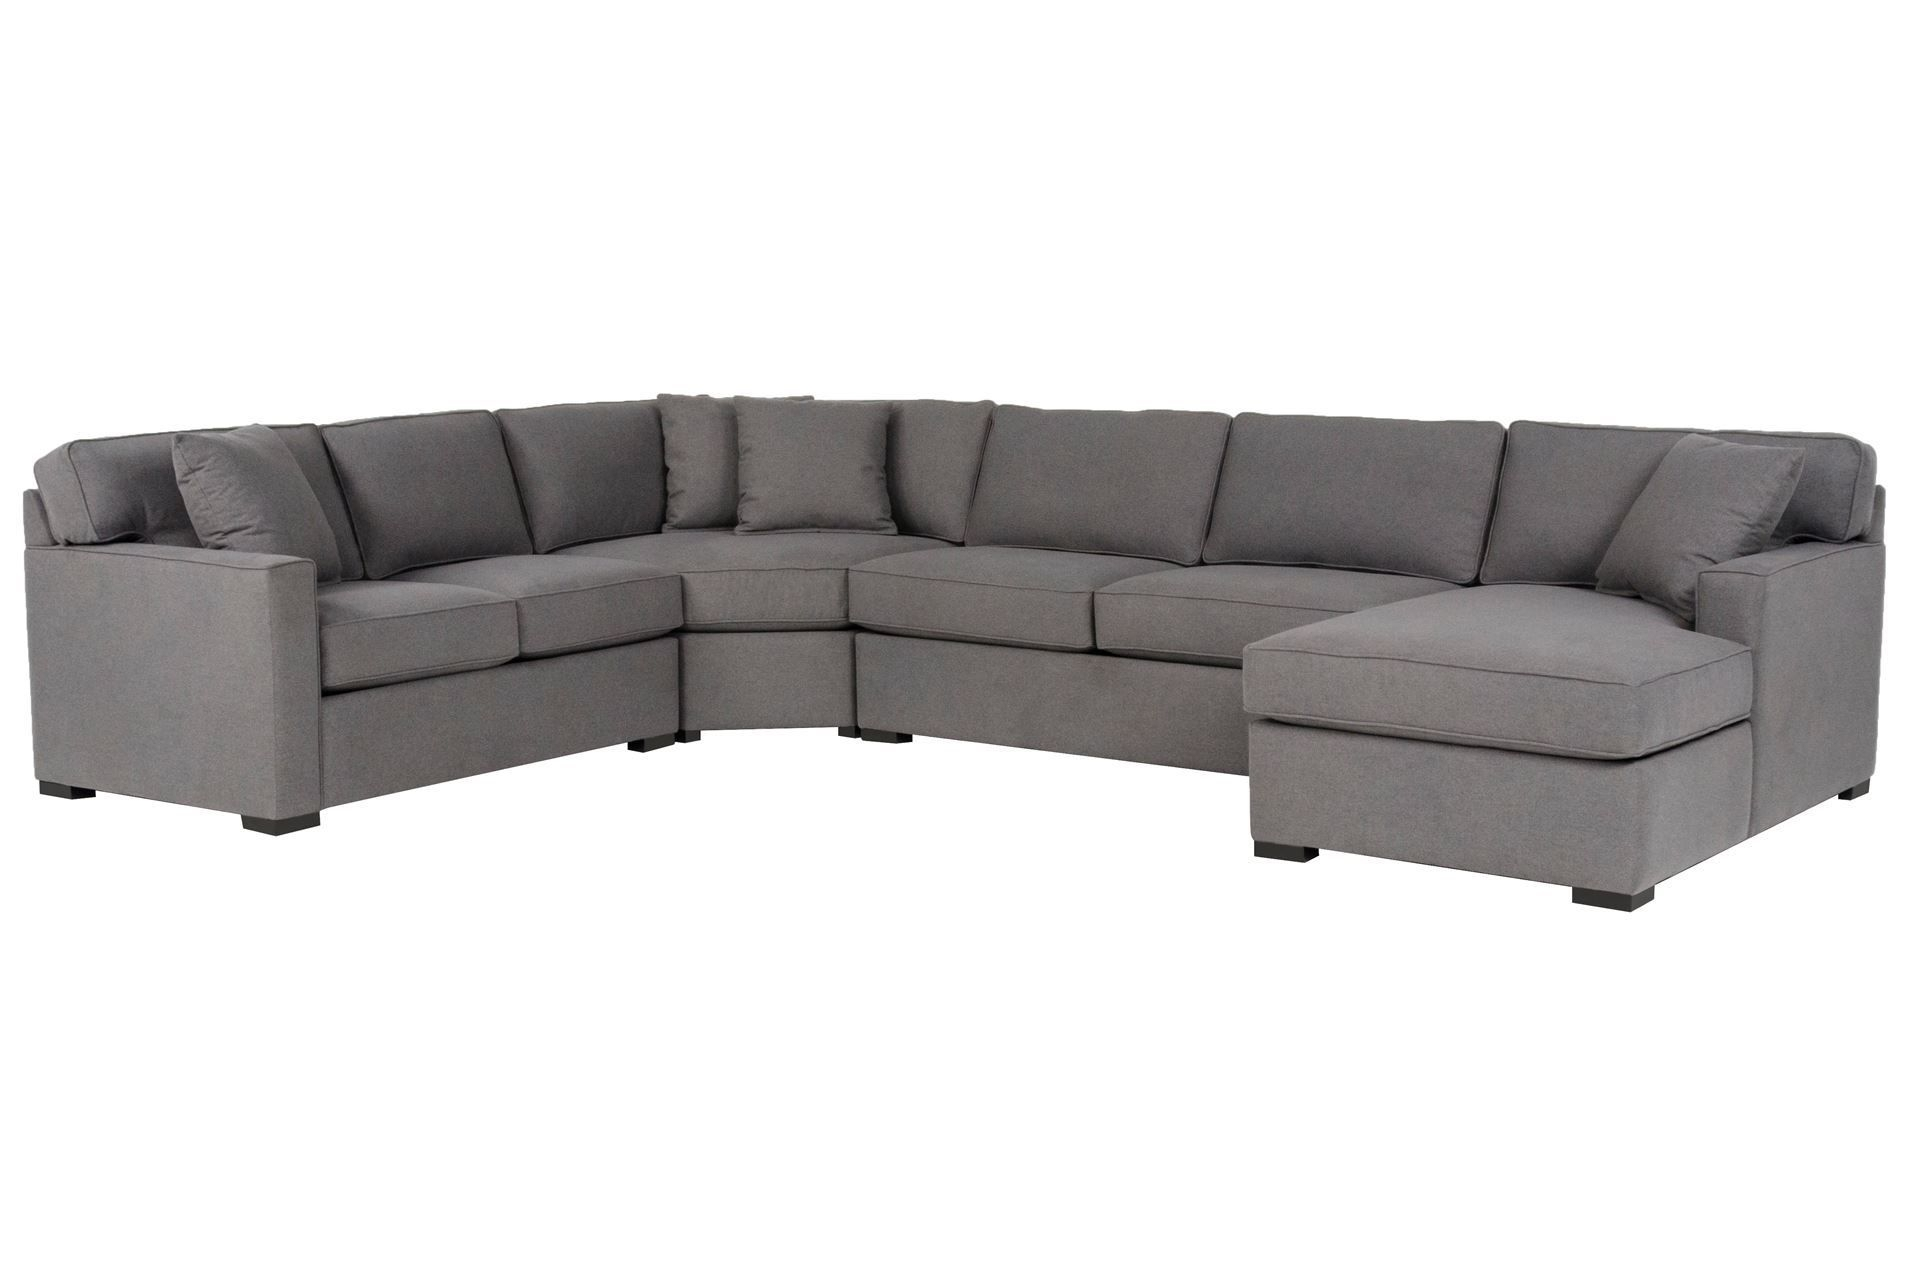 Alder 4 Piece Sectional | Dream Home - Sit Down | Pinterest | Living with Turdur 2 Piece Sectionals With Laf Loveseat (Image 1 of 30)